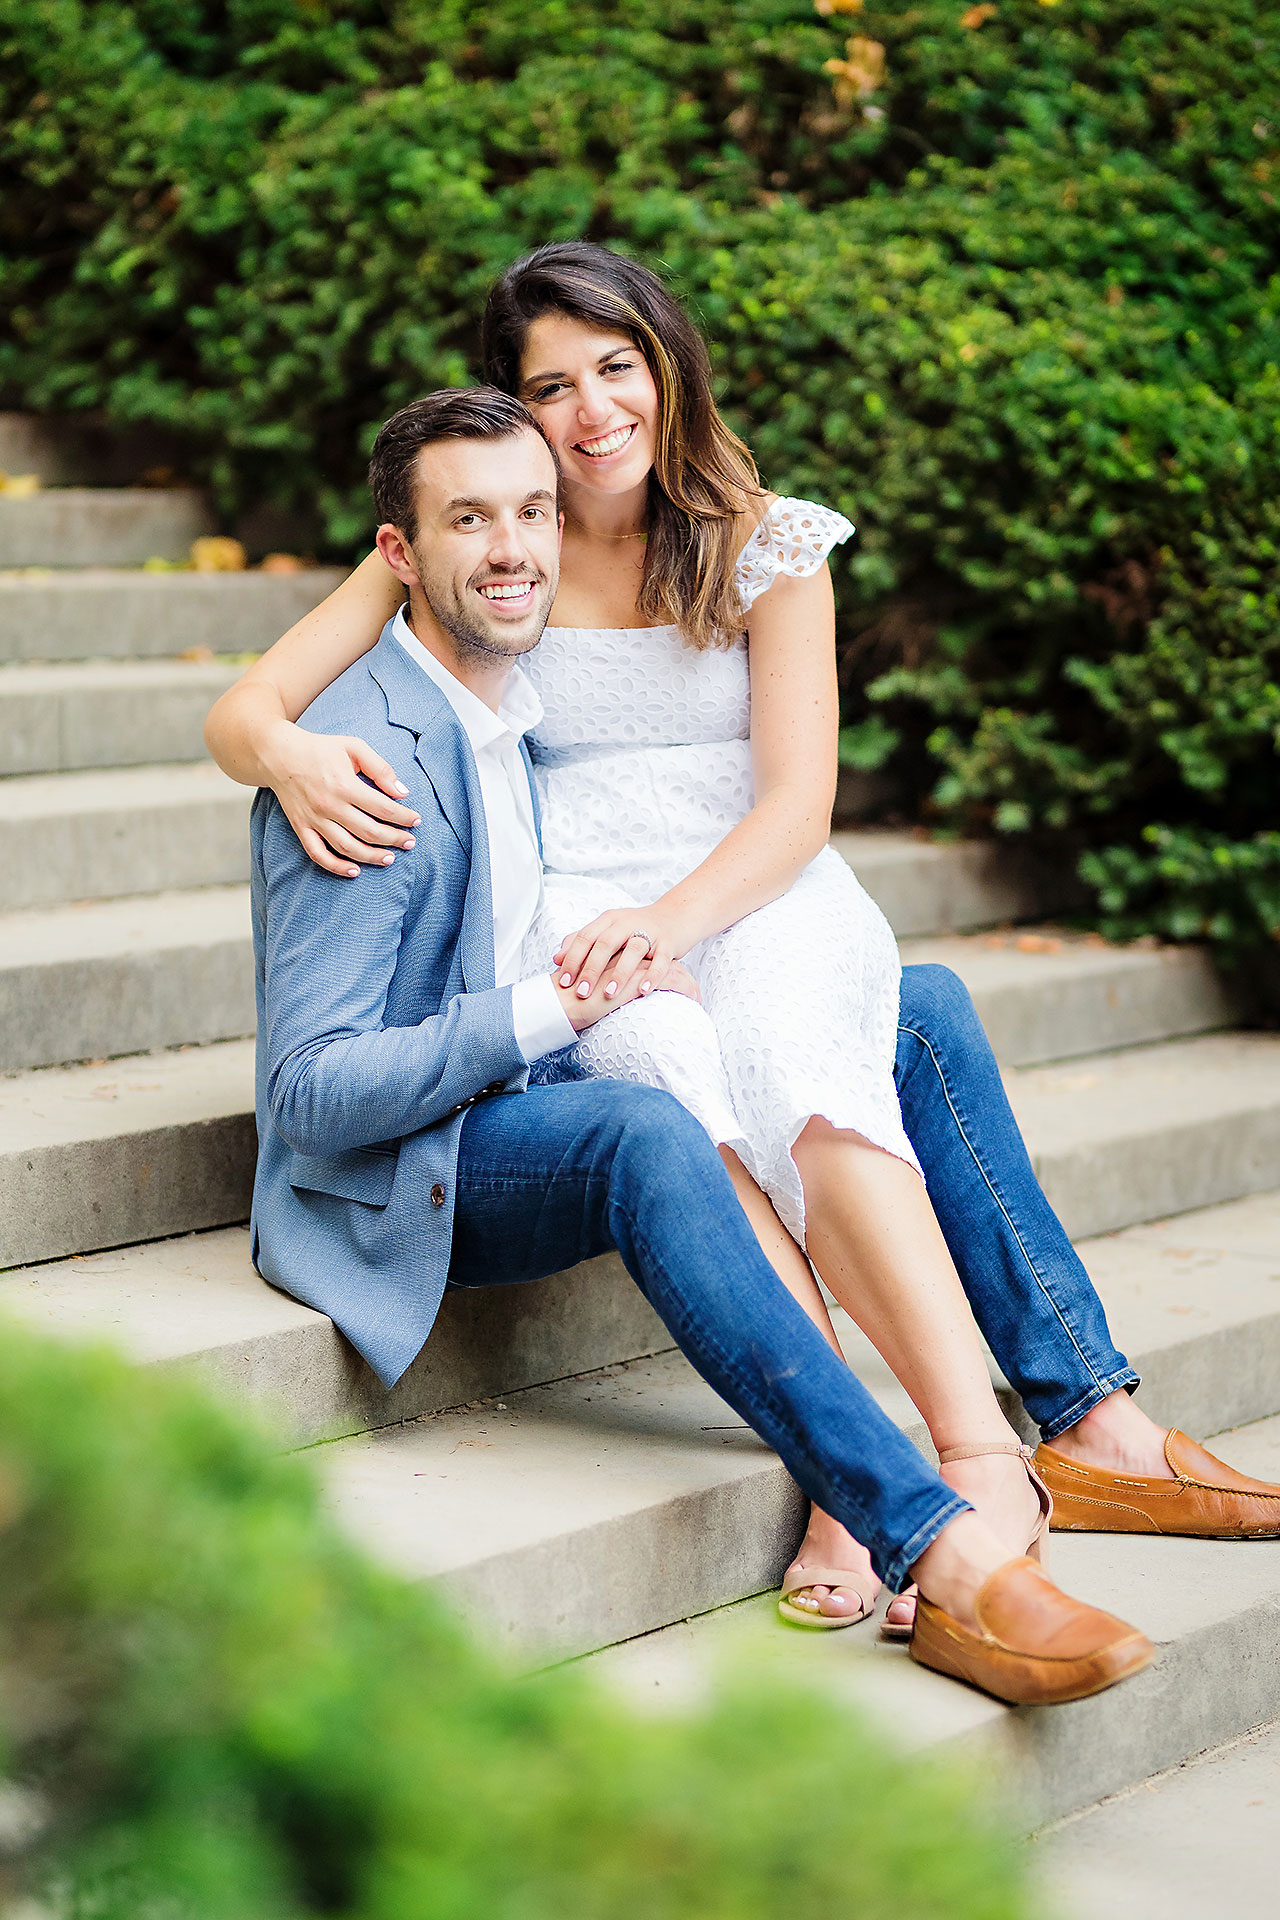 Kate Sawyer Holcomb Gardens Engagement Session 116